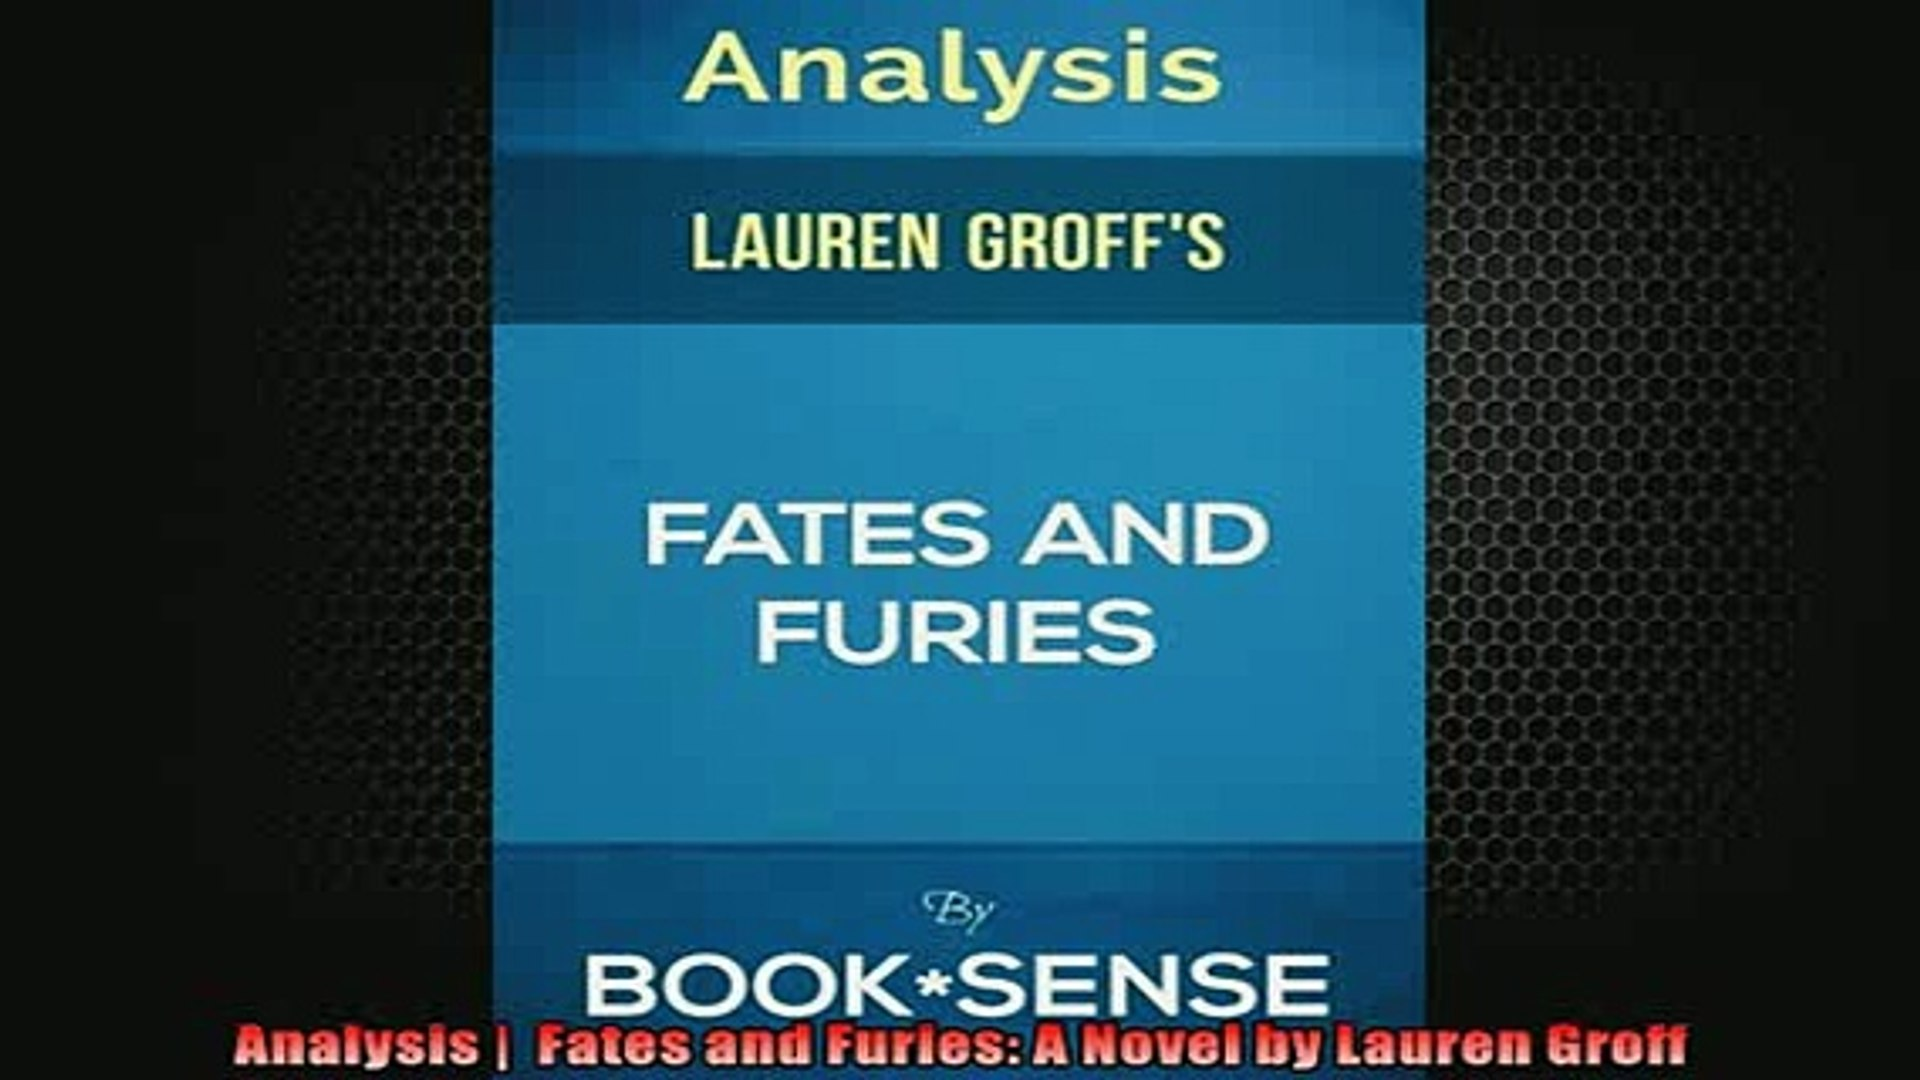 Free Download Analysis Fates And Furies A Novel By Lauren Groff Book Online